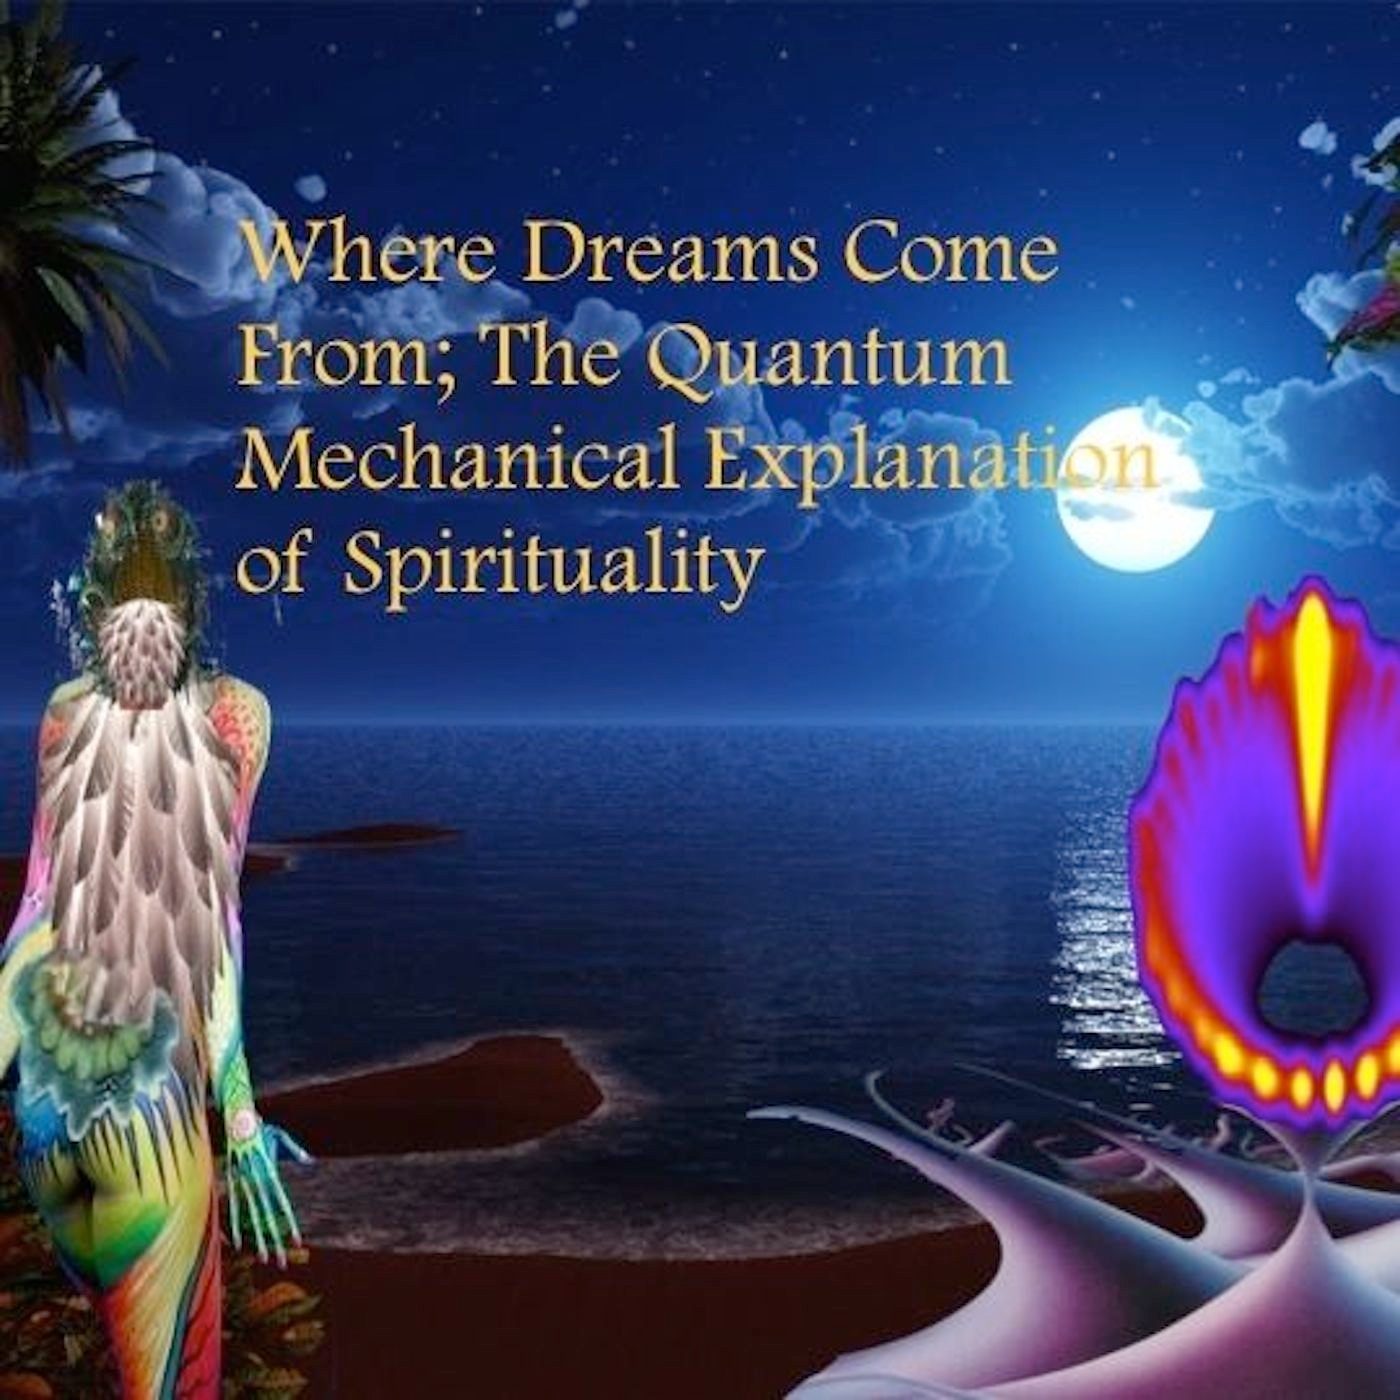 Where Dreams Come From The Quantum Mechanical Explanation of Spirituality